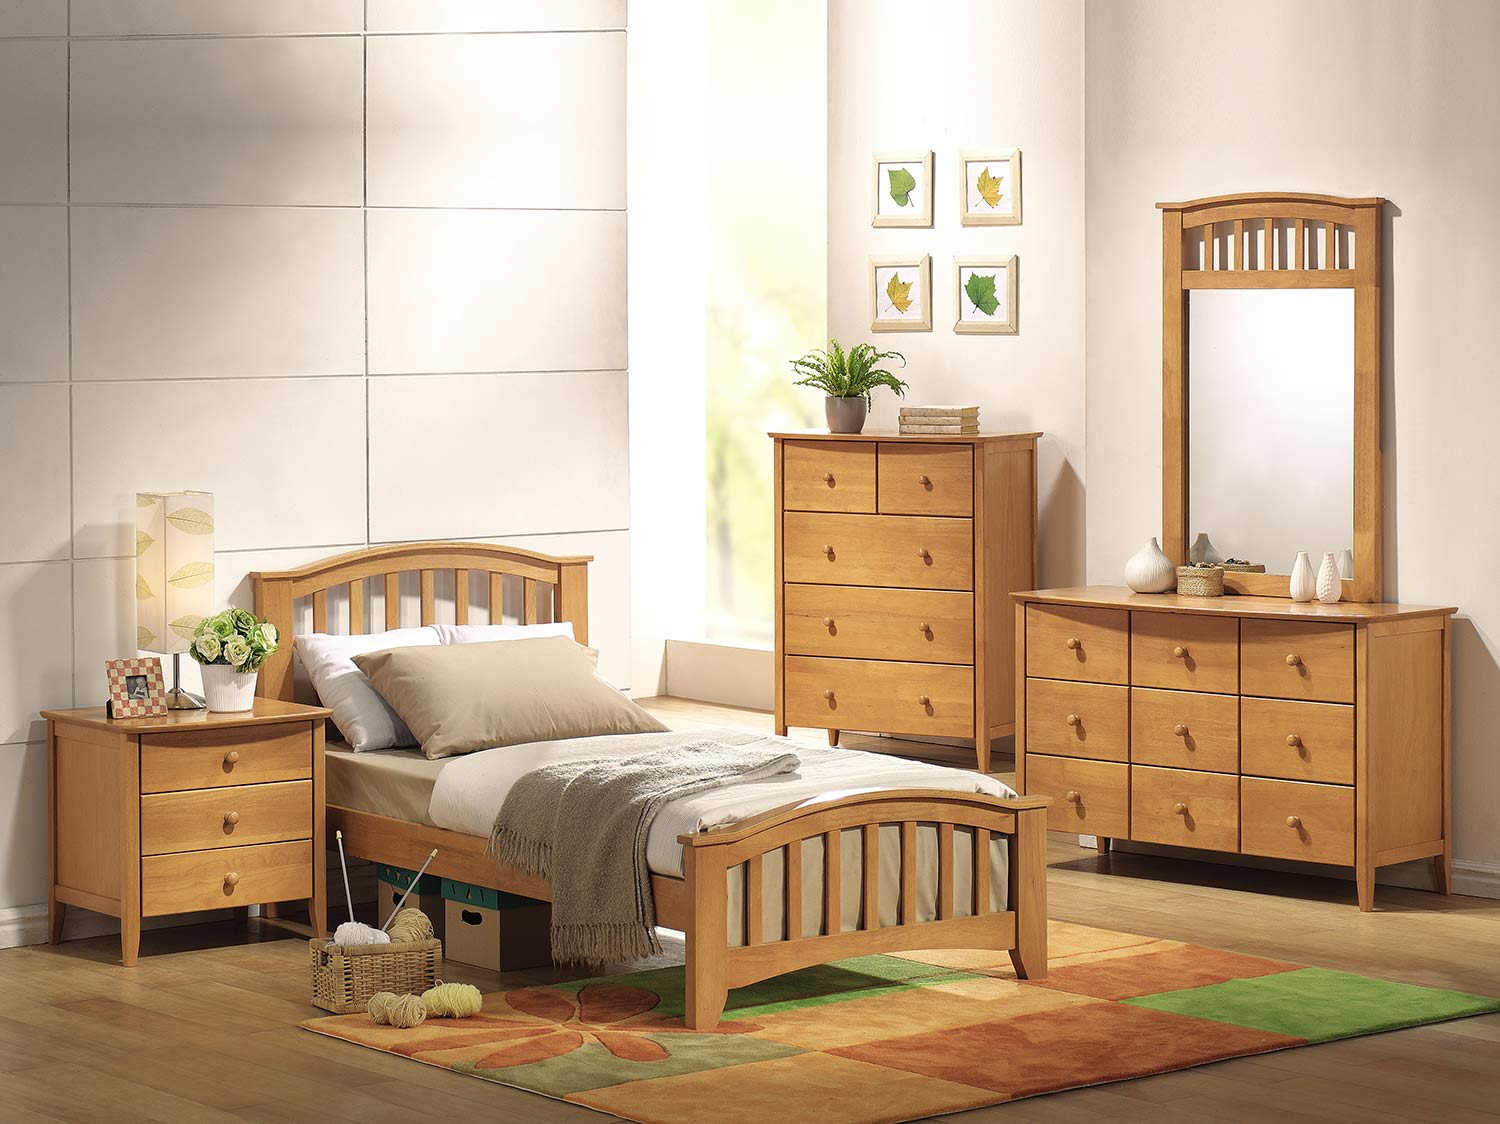 Acme San Marino Bedroom Set - Maple